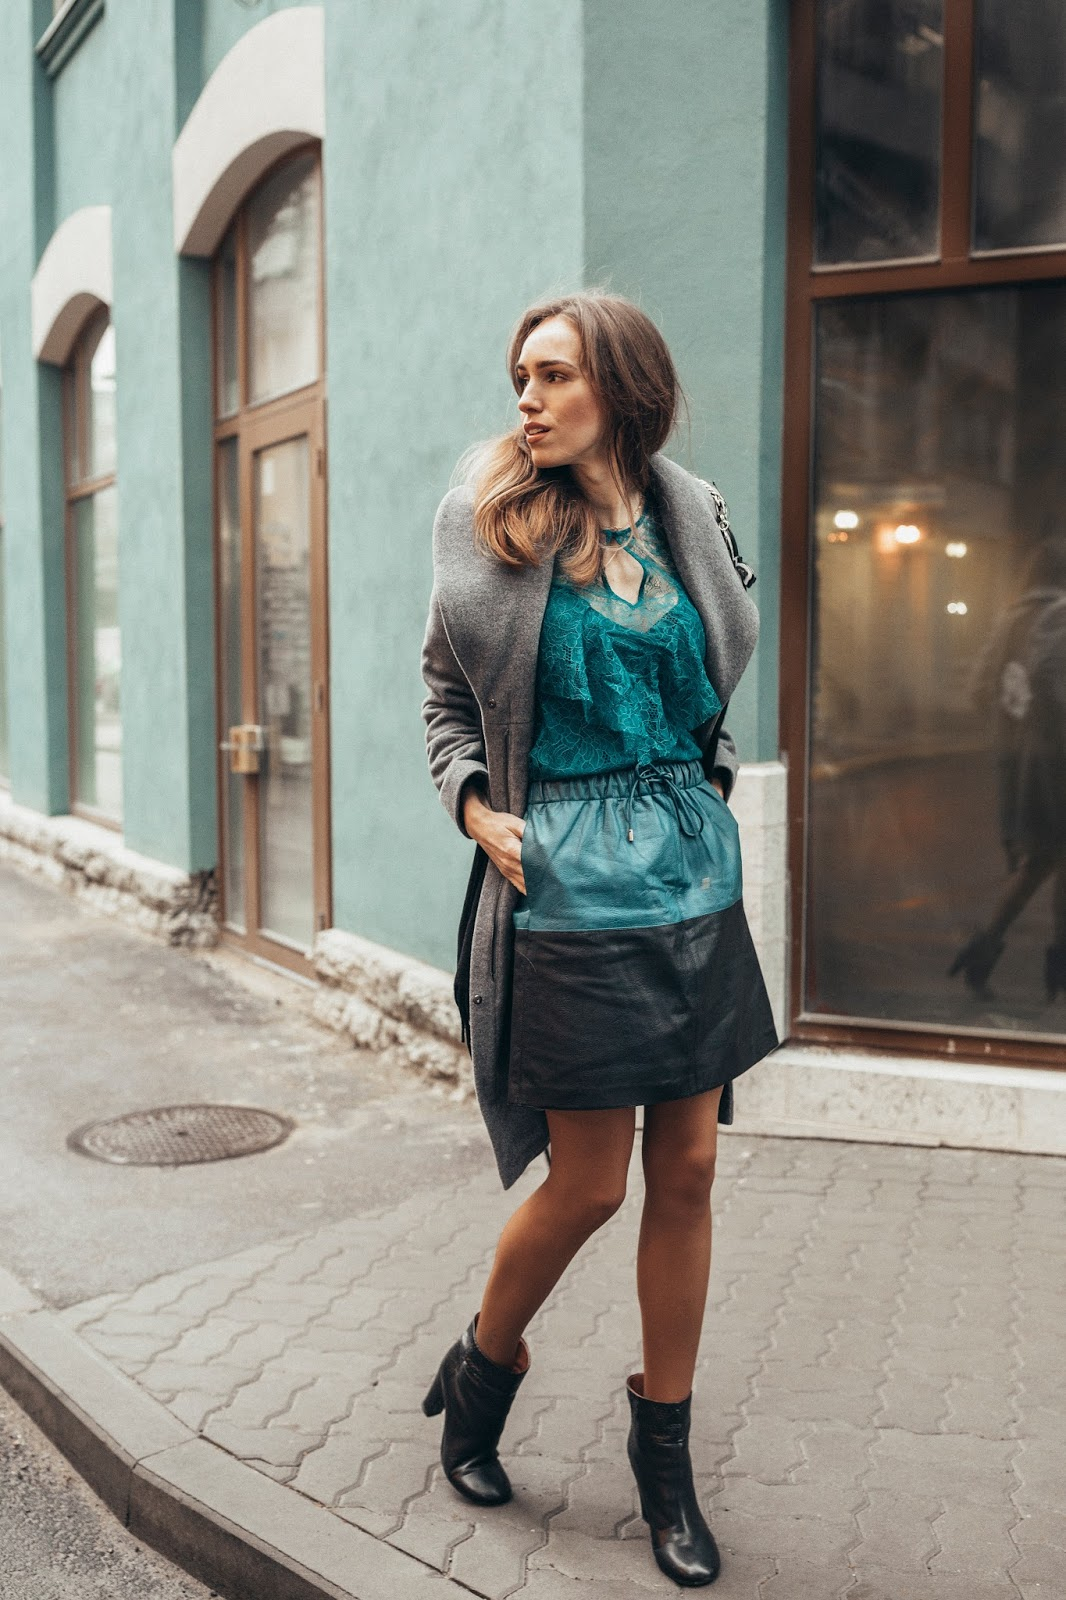 blue lace top leather skirt outfit